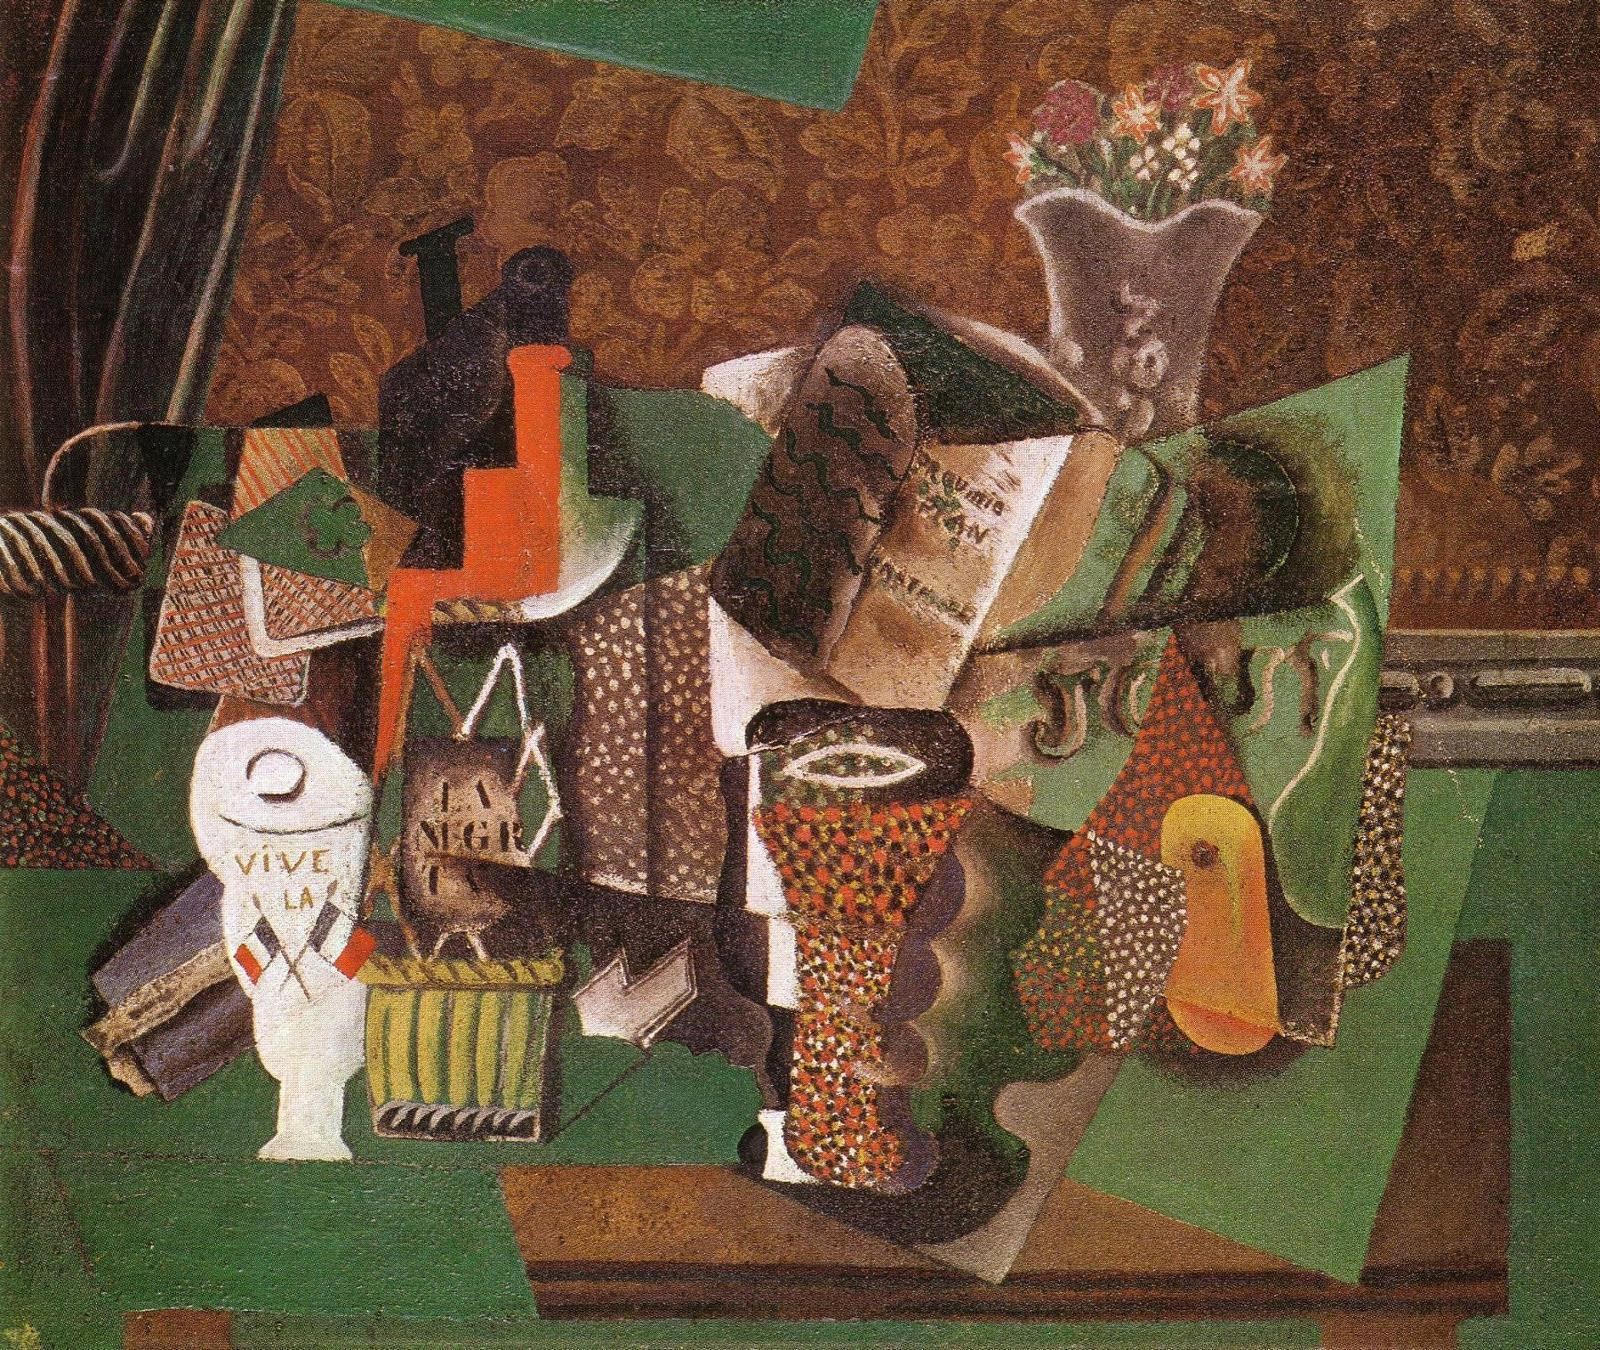 Still-Life-with-Cards-Glasses-and-a-Bottle-of-Rum-Vive-la-France-[1914]